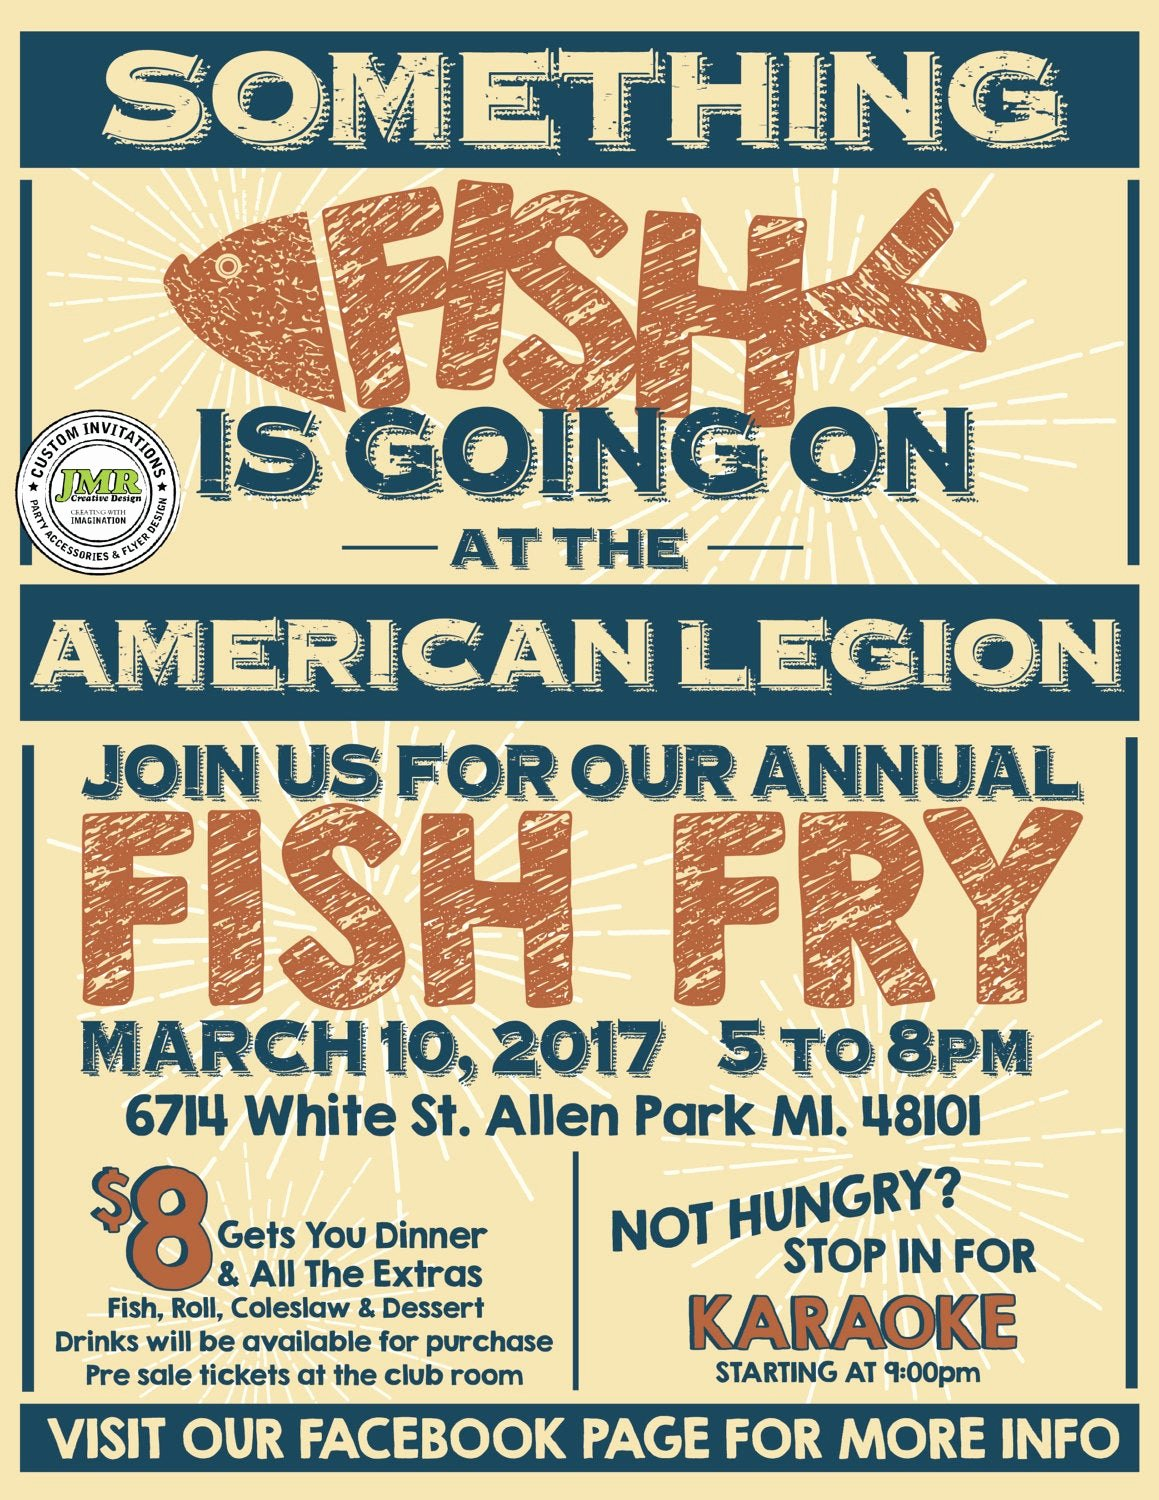 Fish Fry Fundraiser Flyer Luxury Fish Fry Flyer Fish Fry Fundraiser Flyer Benefit Flyer